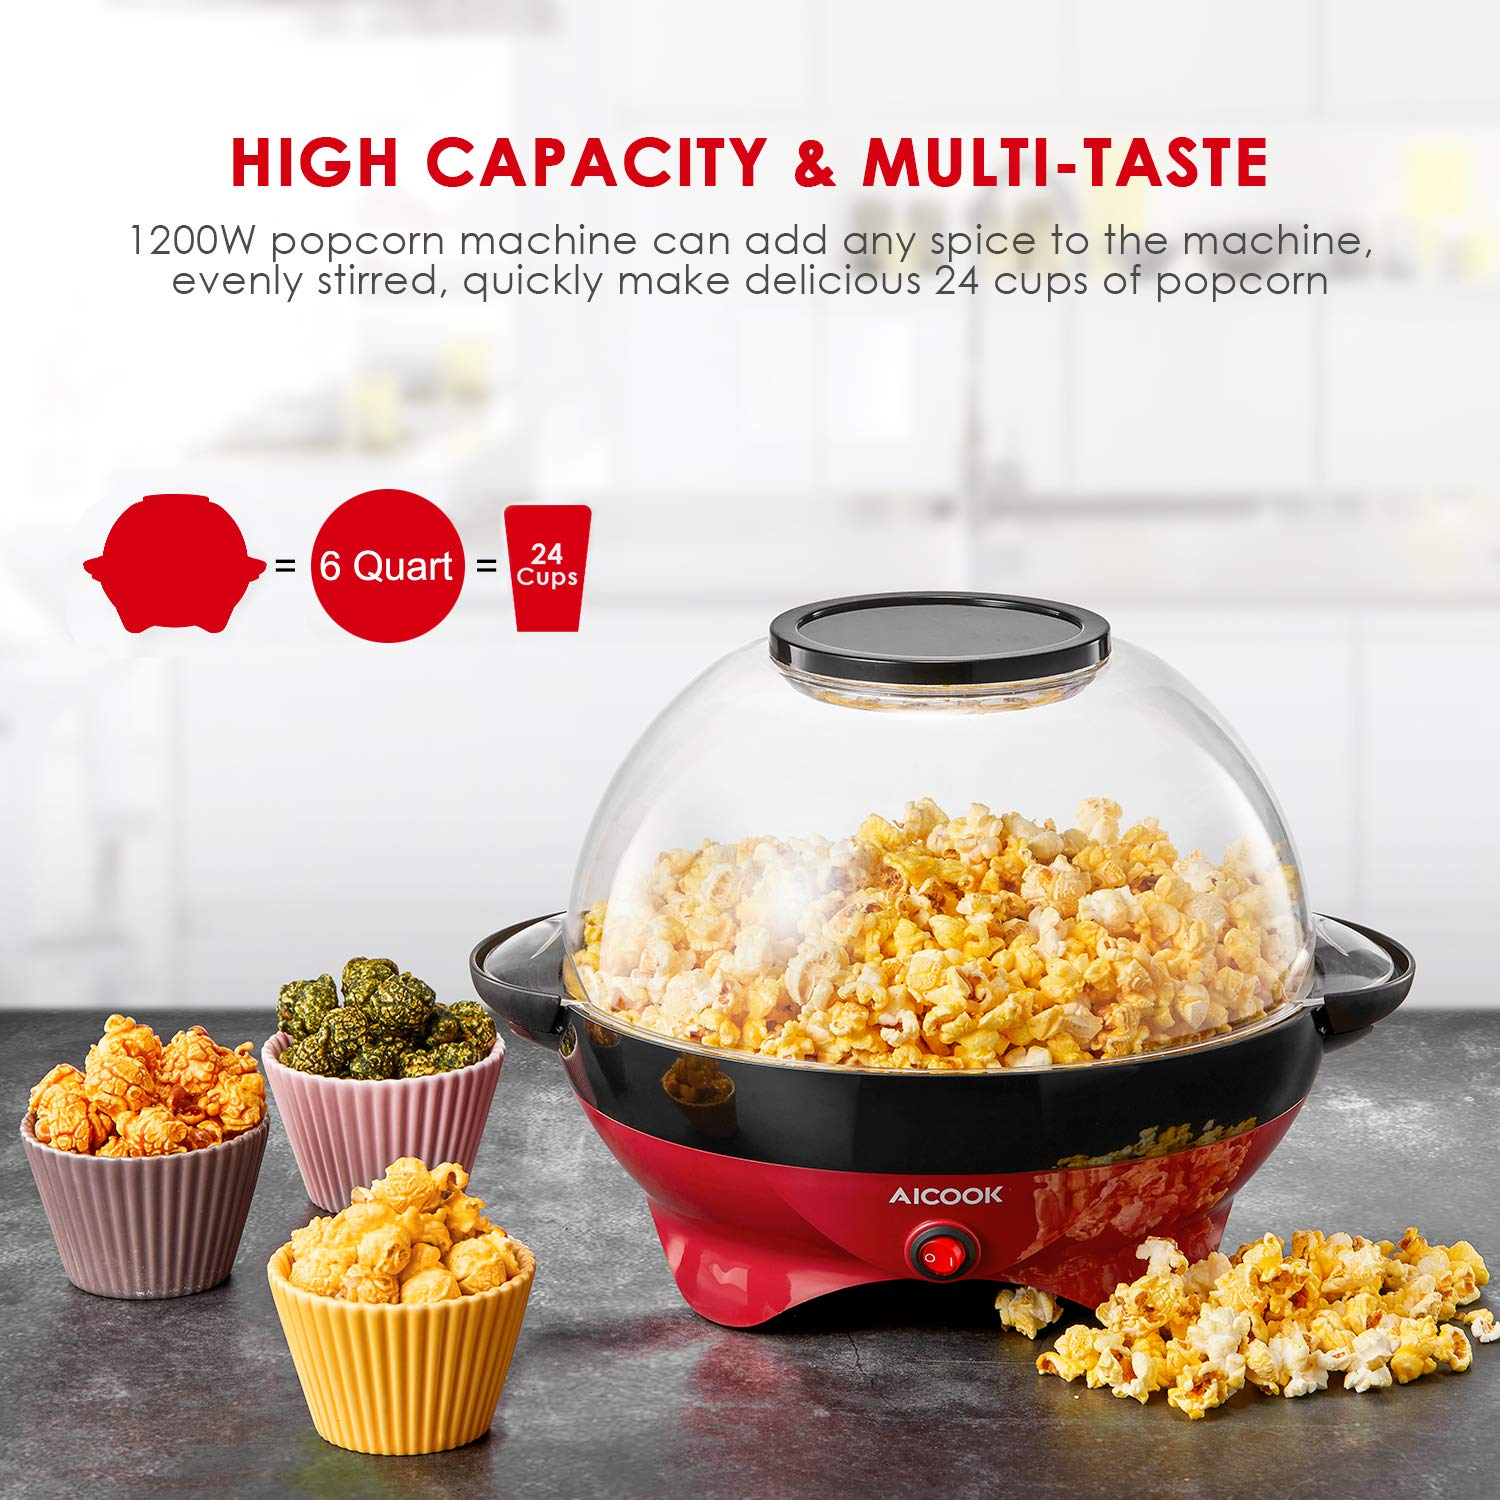 Popcorn Maker, AICOOK Electric Hot Oil Popcorn Popper Machine with Stirring Rod Offers Large Lid for Serving Bowl and Convenient Storage, 6-Quart, Red by AICOOK (Image #2)